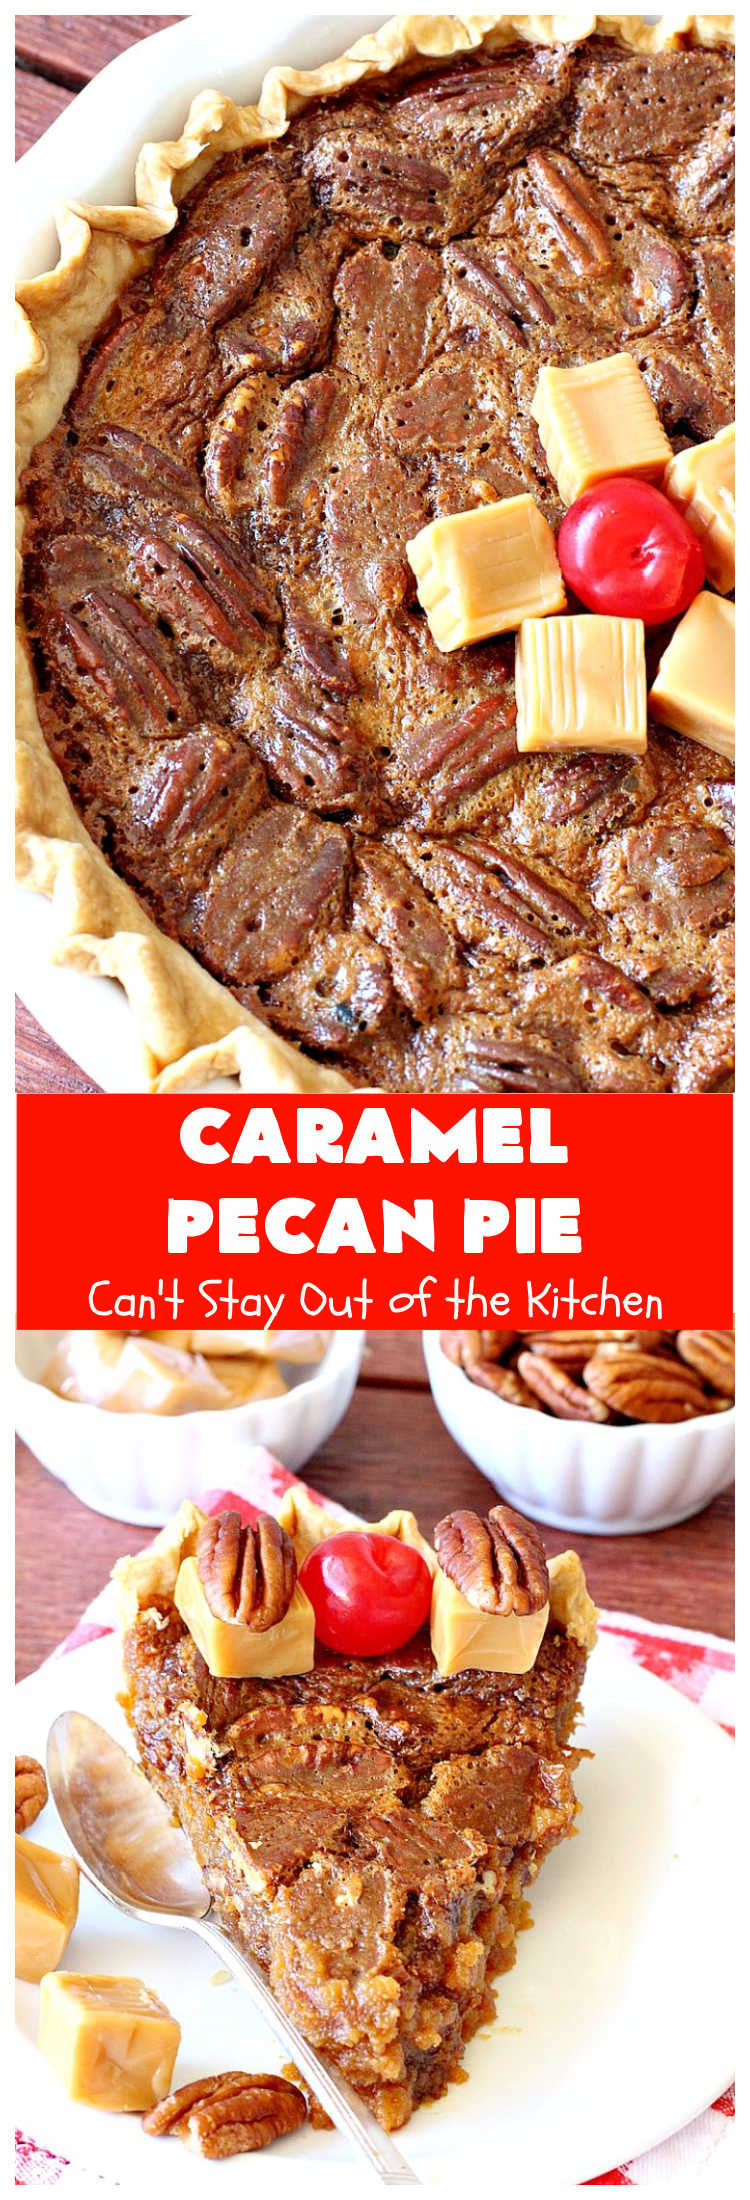 Caramel Pecan Pie   Can't Stay Out of the Kitchen   Oh my gosh! This #PecanPie is rich decadent & divine! It's made with #caramels in the filling. This is a fantastic #dessert for company or #holidays like #Thanksgiving or #Christmas. Wow your family & friends with one of the best pies you'll ever eat! #Pecans #PecanDessert #CaramelPecanPie #GooseberryPatch